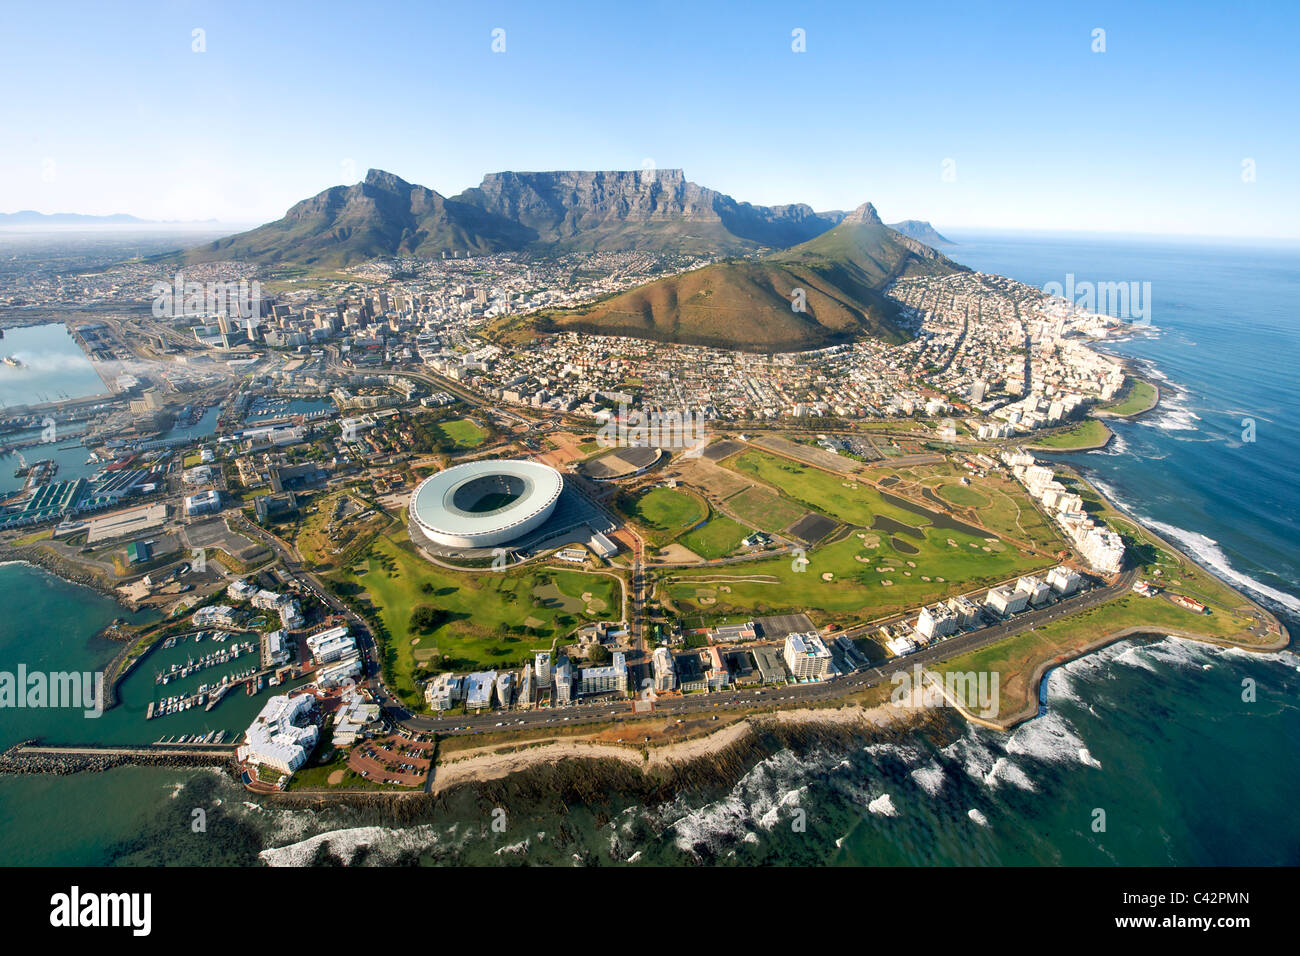 City Of Cape Town: Aerial View Of The City Of Cape Town, South Africa Stock